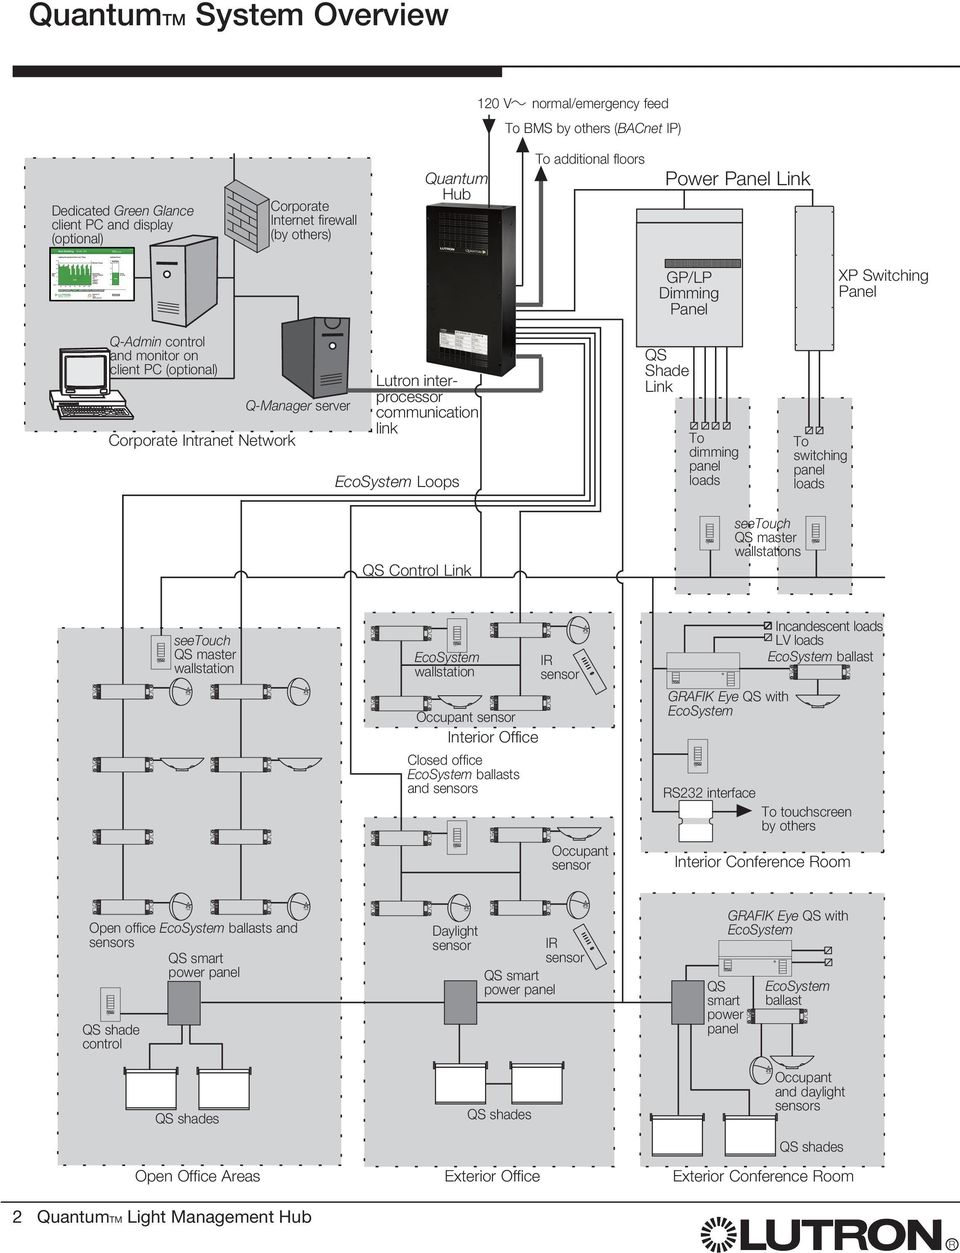 (optional) Corporate Intranet Network Q-Manager server Lutron interprocessor communication link Loops GP/LP Dimming Panel QS Shade Link To dimming panel loads To switching panel loads XP Switching